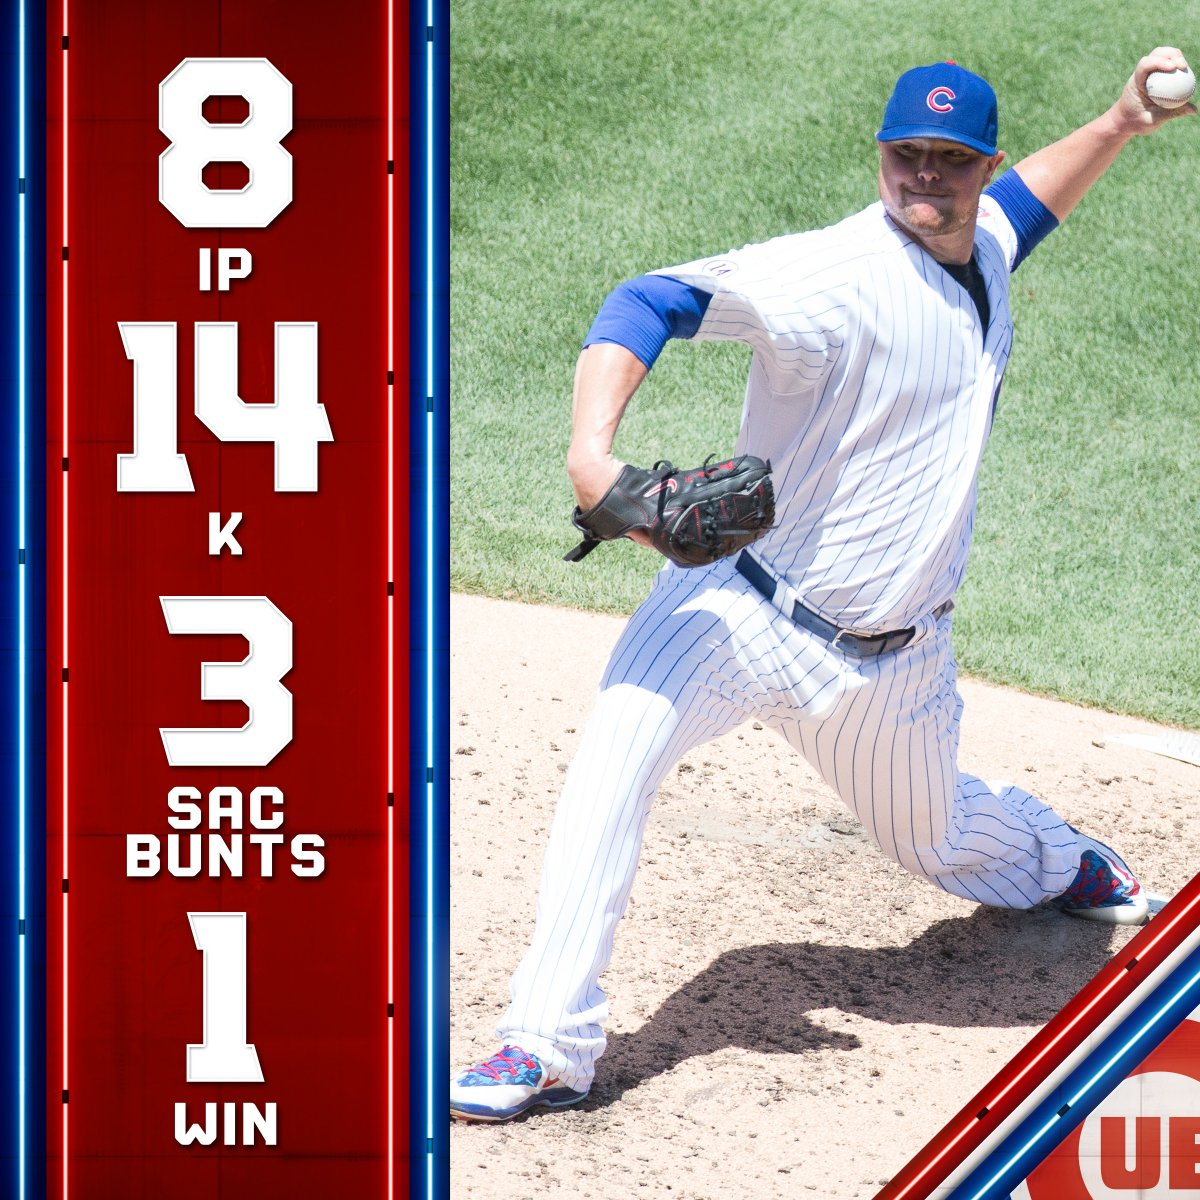 Wishing a happy birthday to Jon Lester!  Big Jon had a @Cubs career-high 14 K's AND 3 sac bunts in the same game 🔥